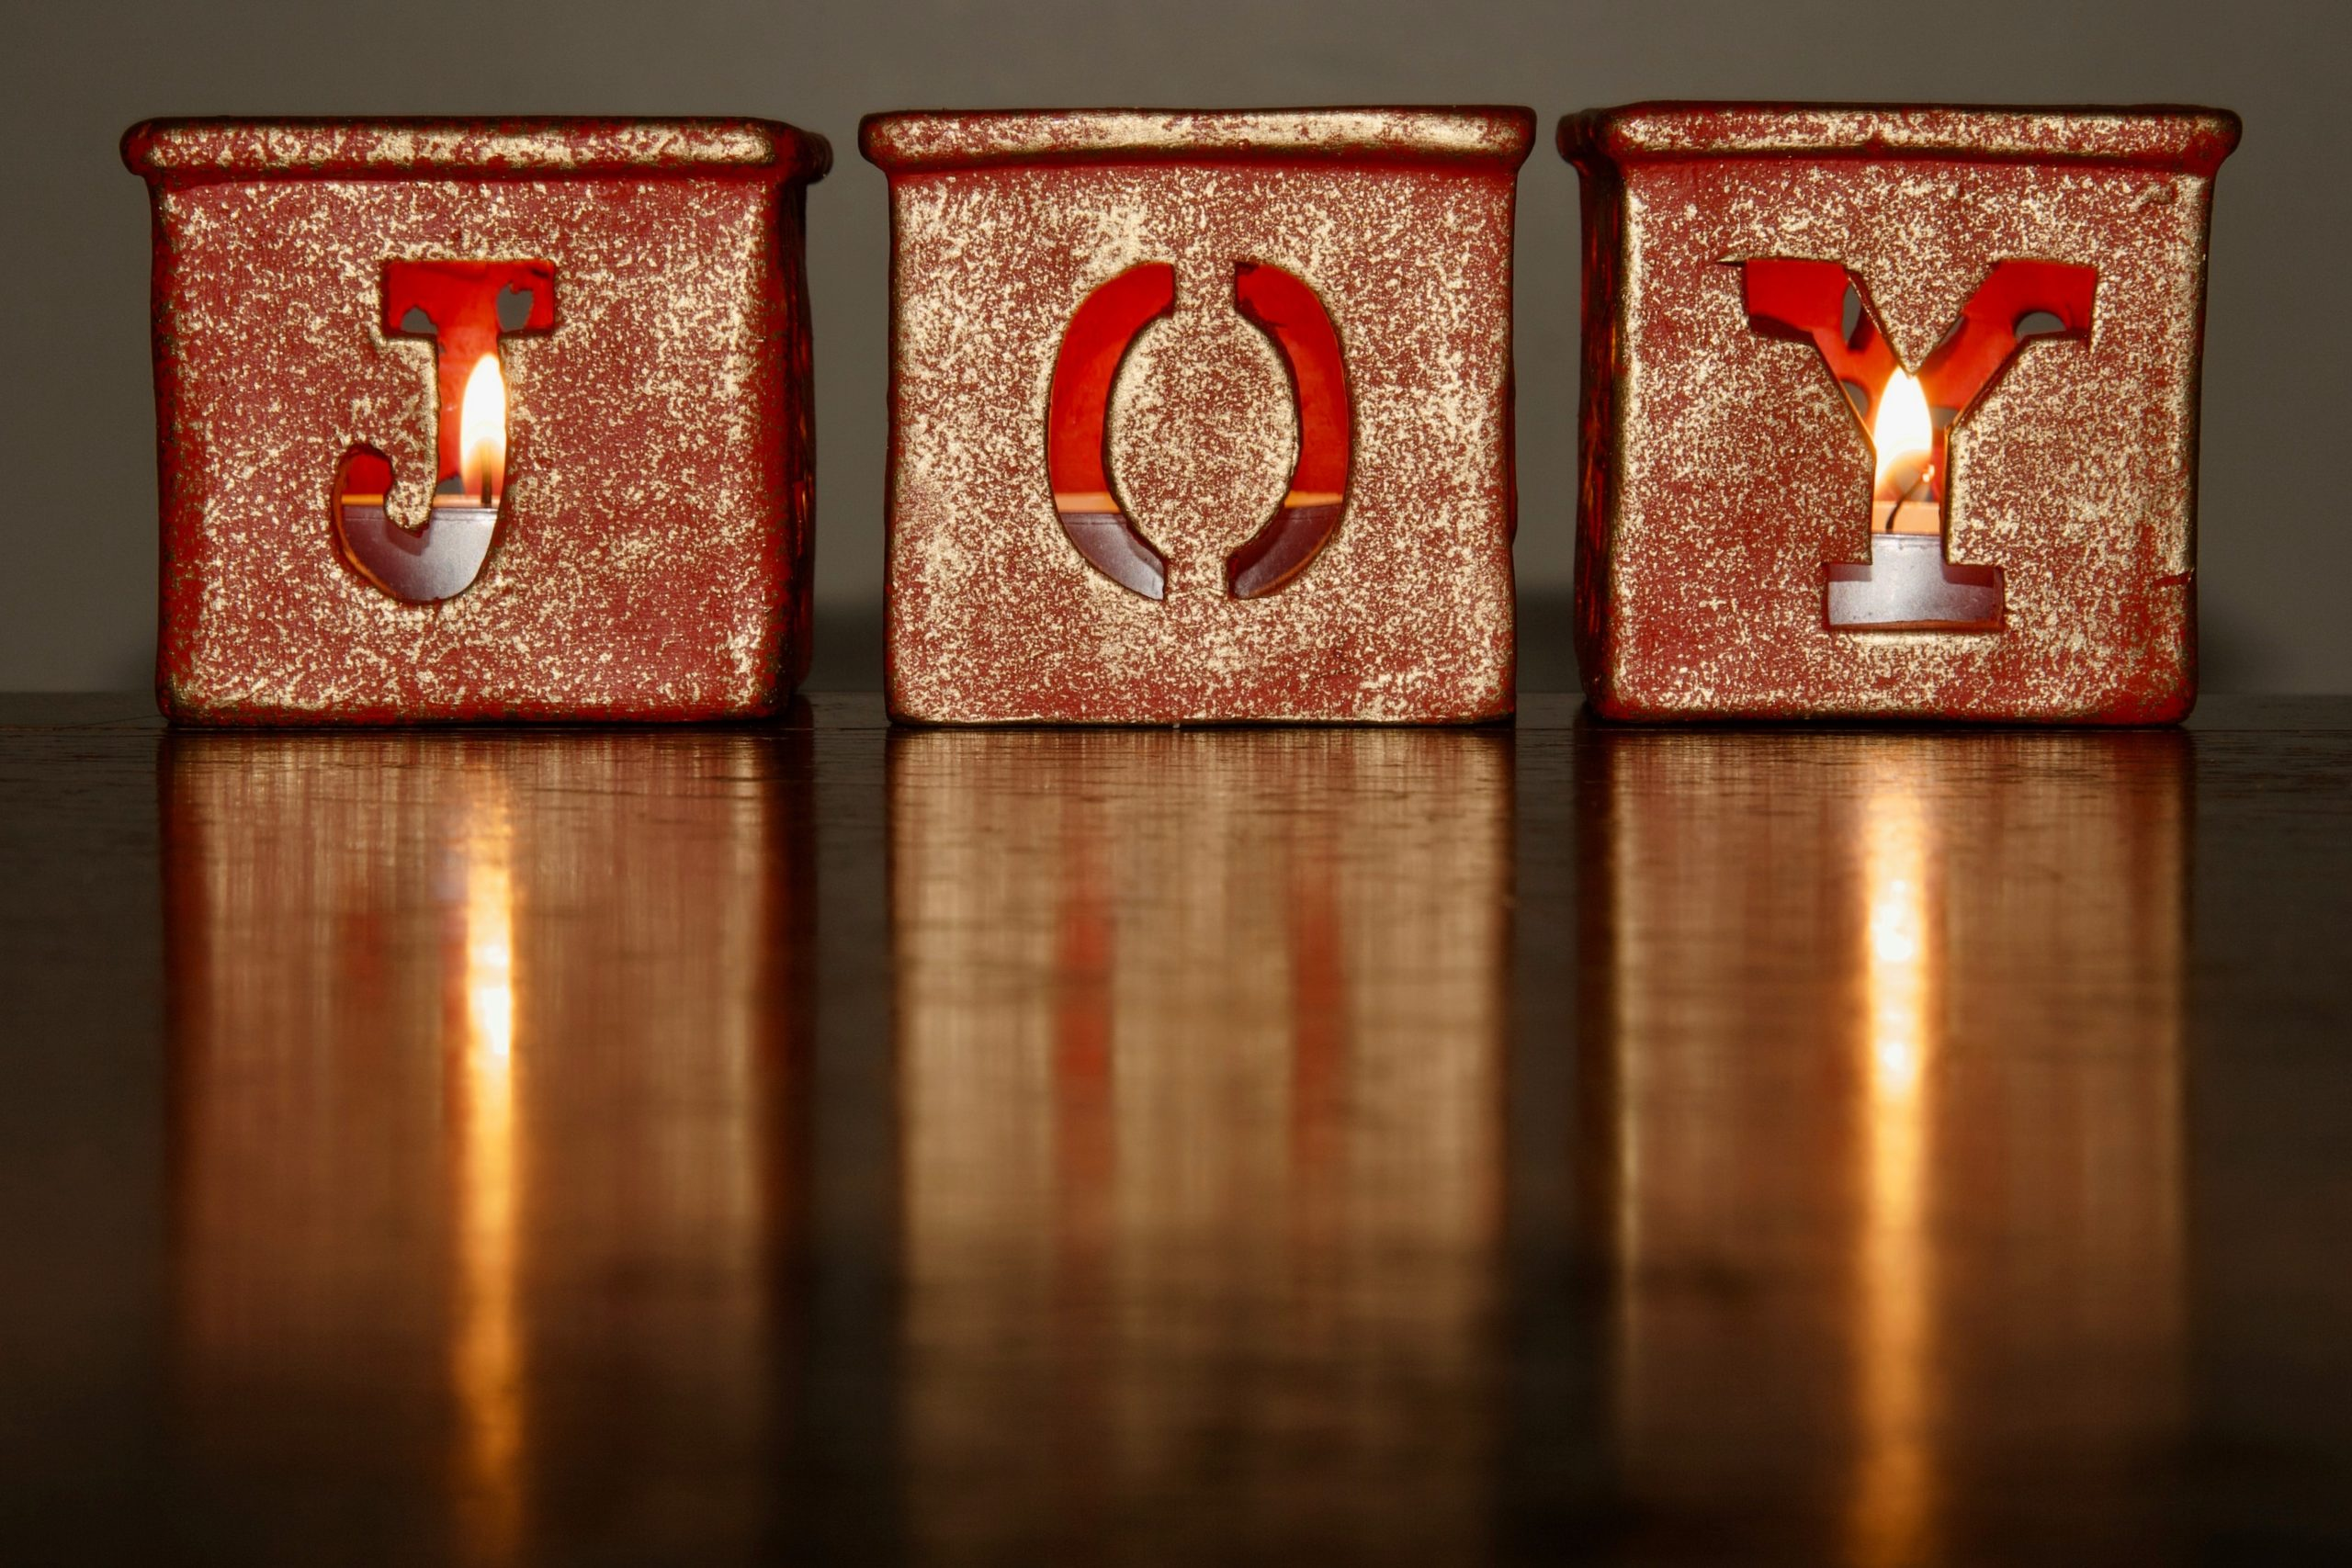 candleholders that spell out JOY